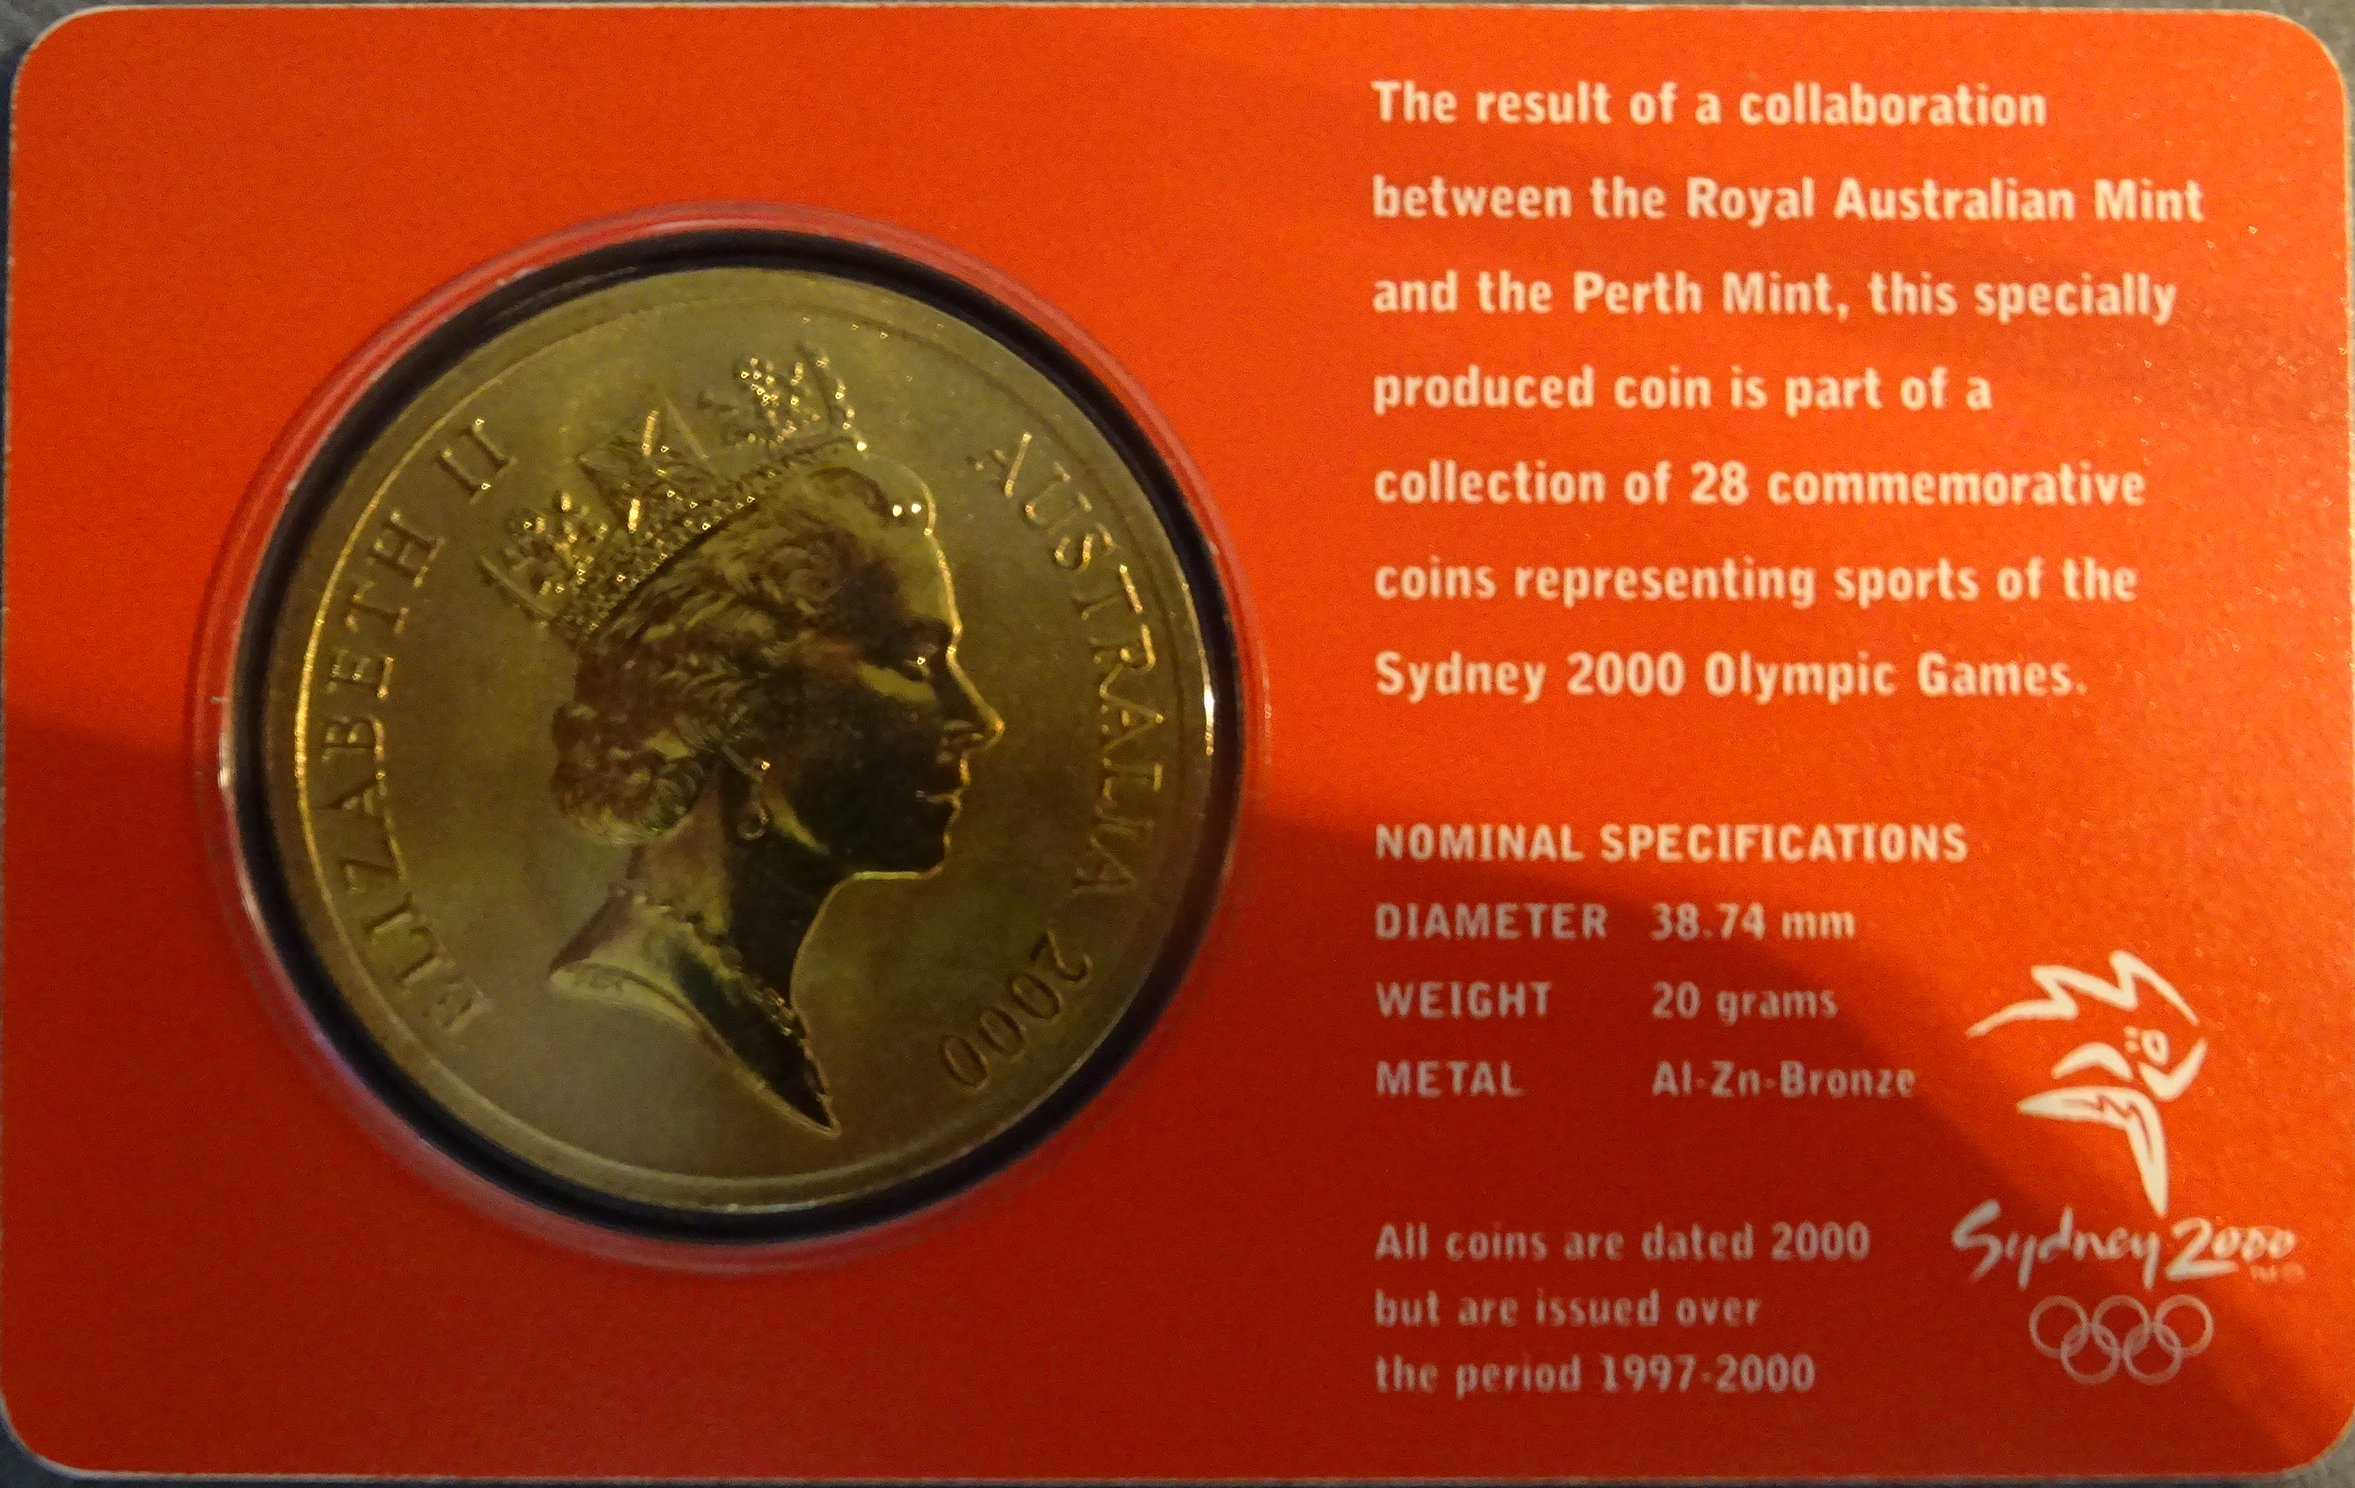 TABLE TENNIS 23//28 Sydney 2000 Olympic Coin Collection $5 UNC RAM Coin